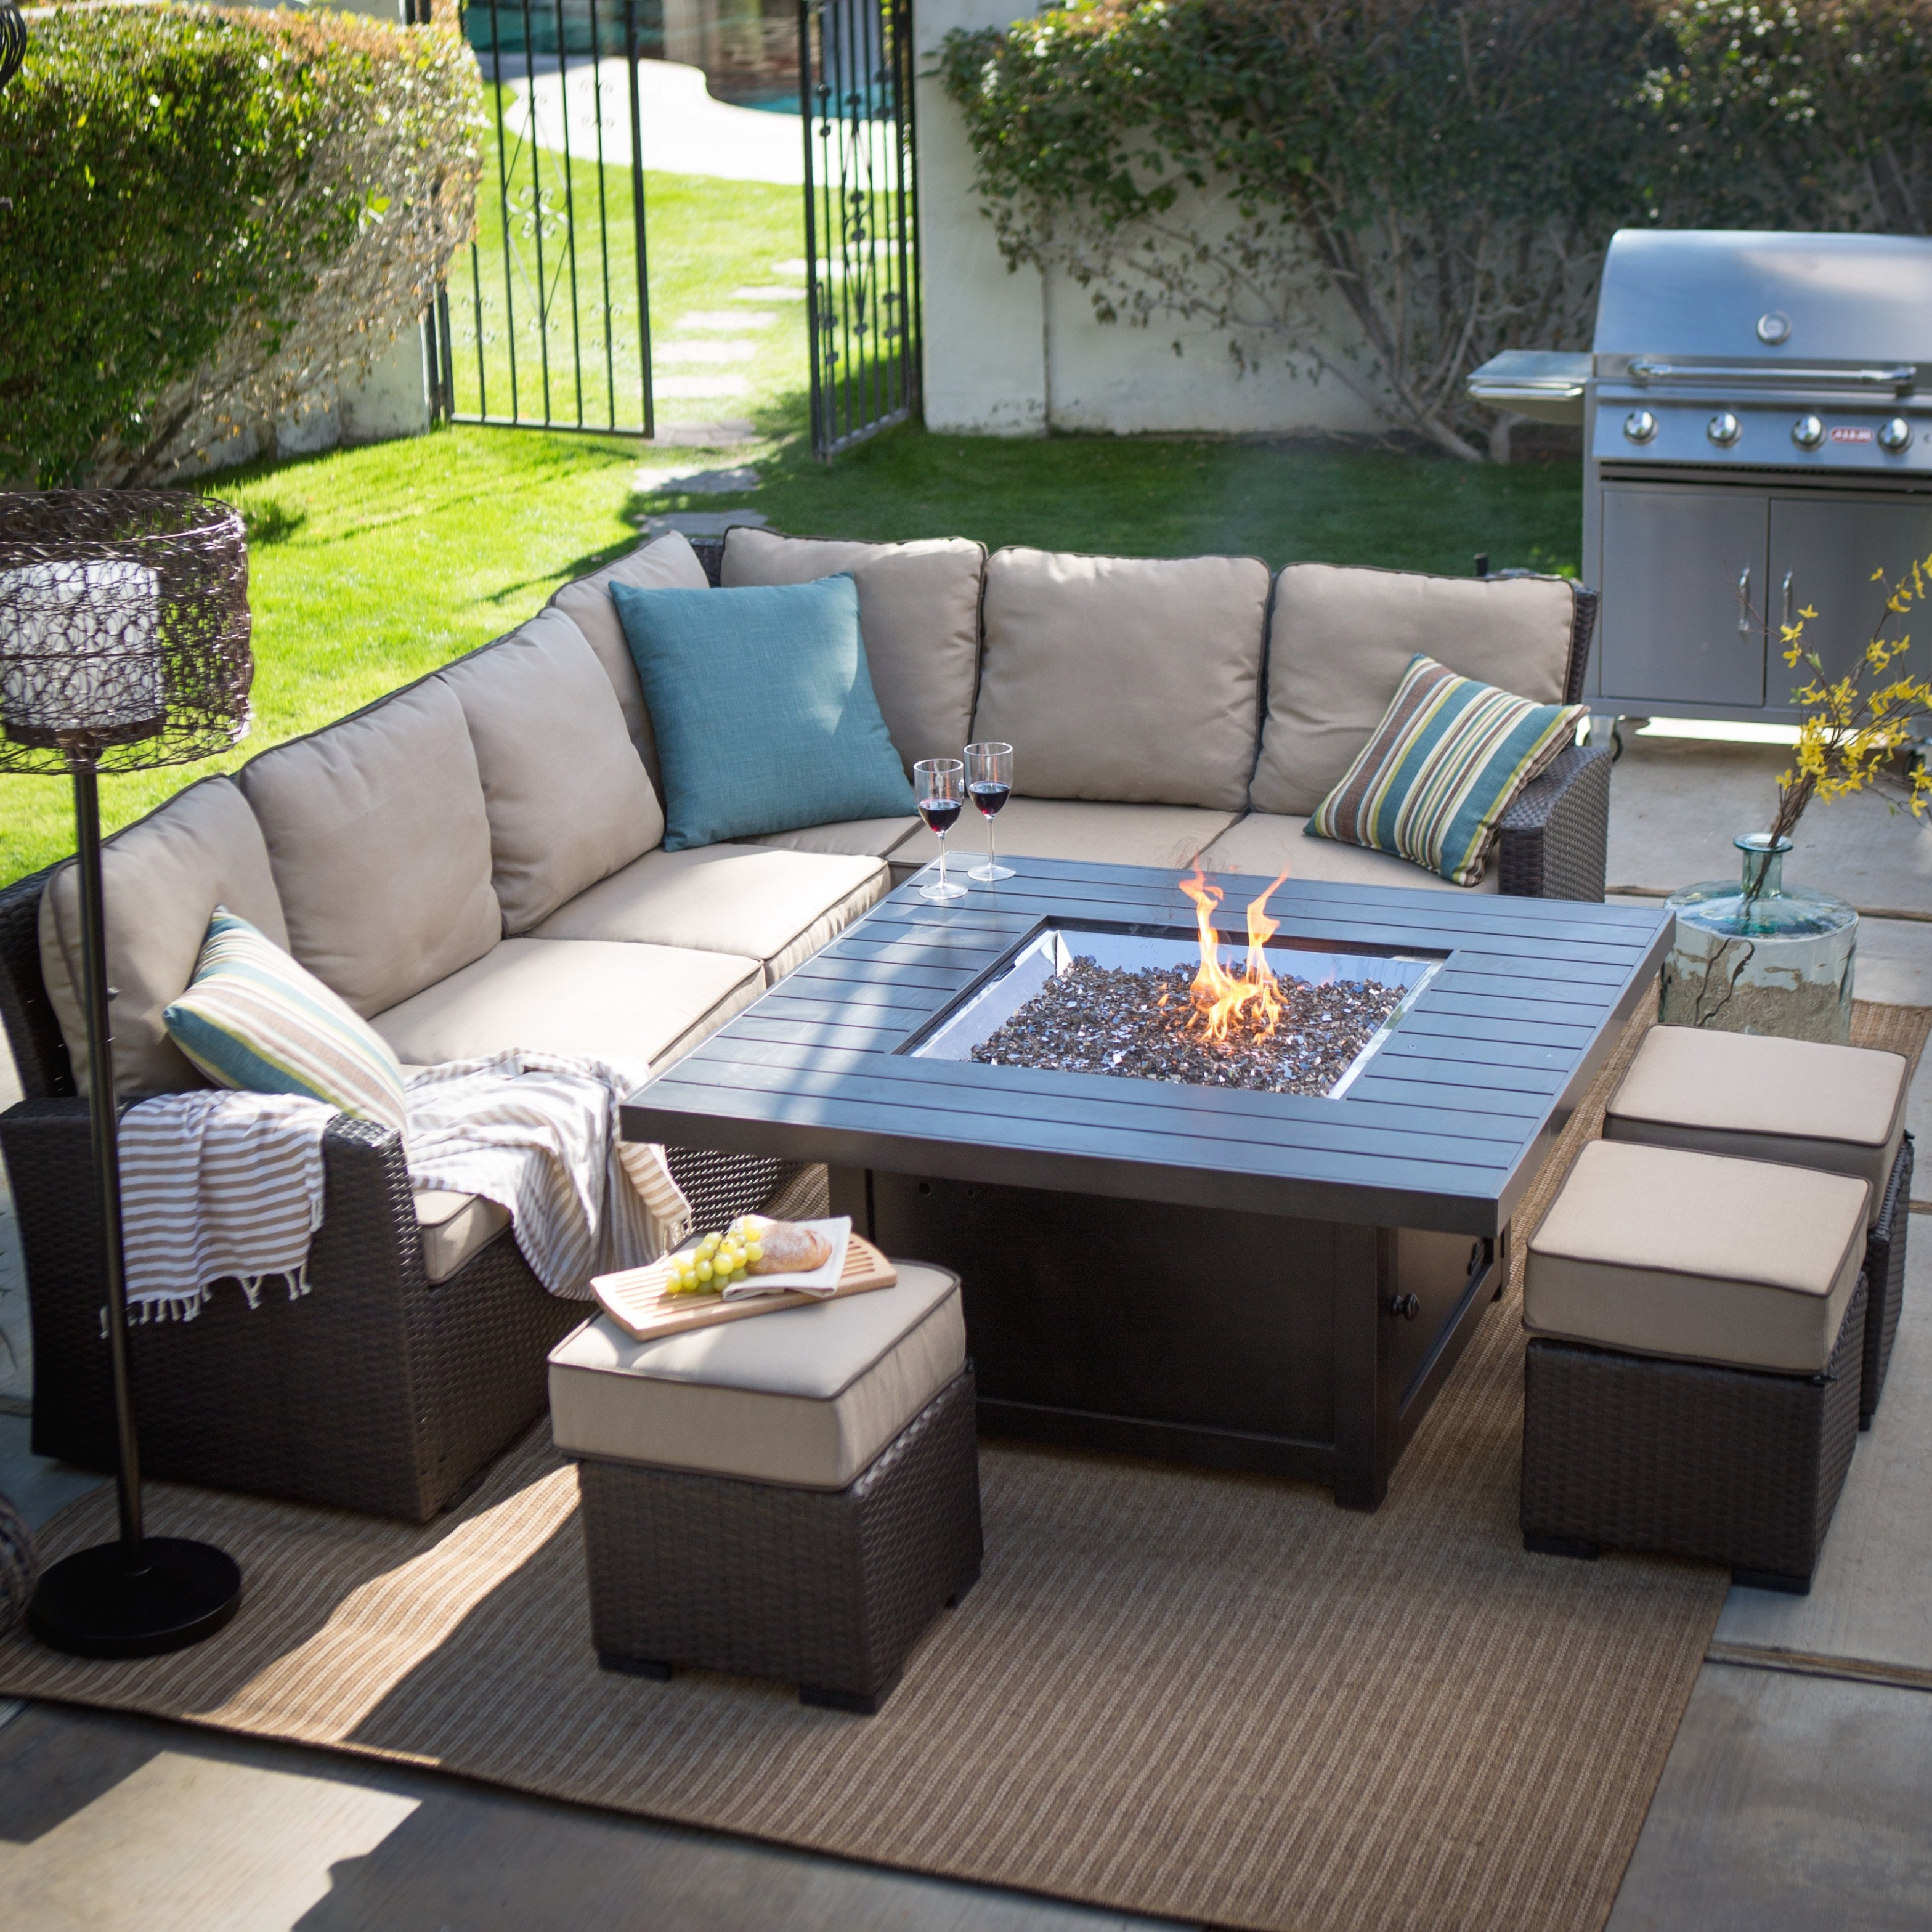 Patio Conversation Sets With Fire Pit Throughout Latest Revisited Fire Pit Conversation Sets Shrewd Patio Furniture Decor (View 8 of 20)